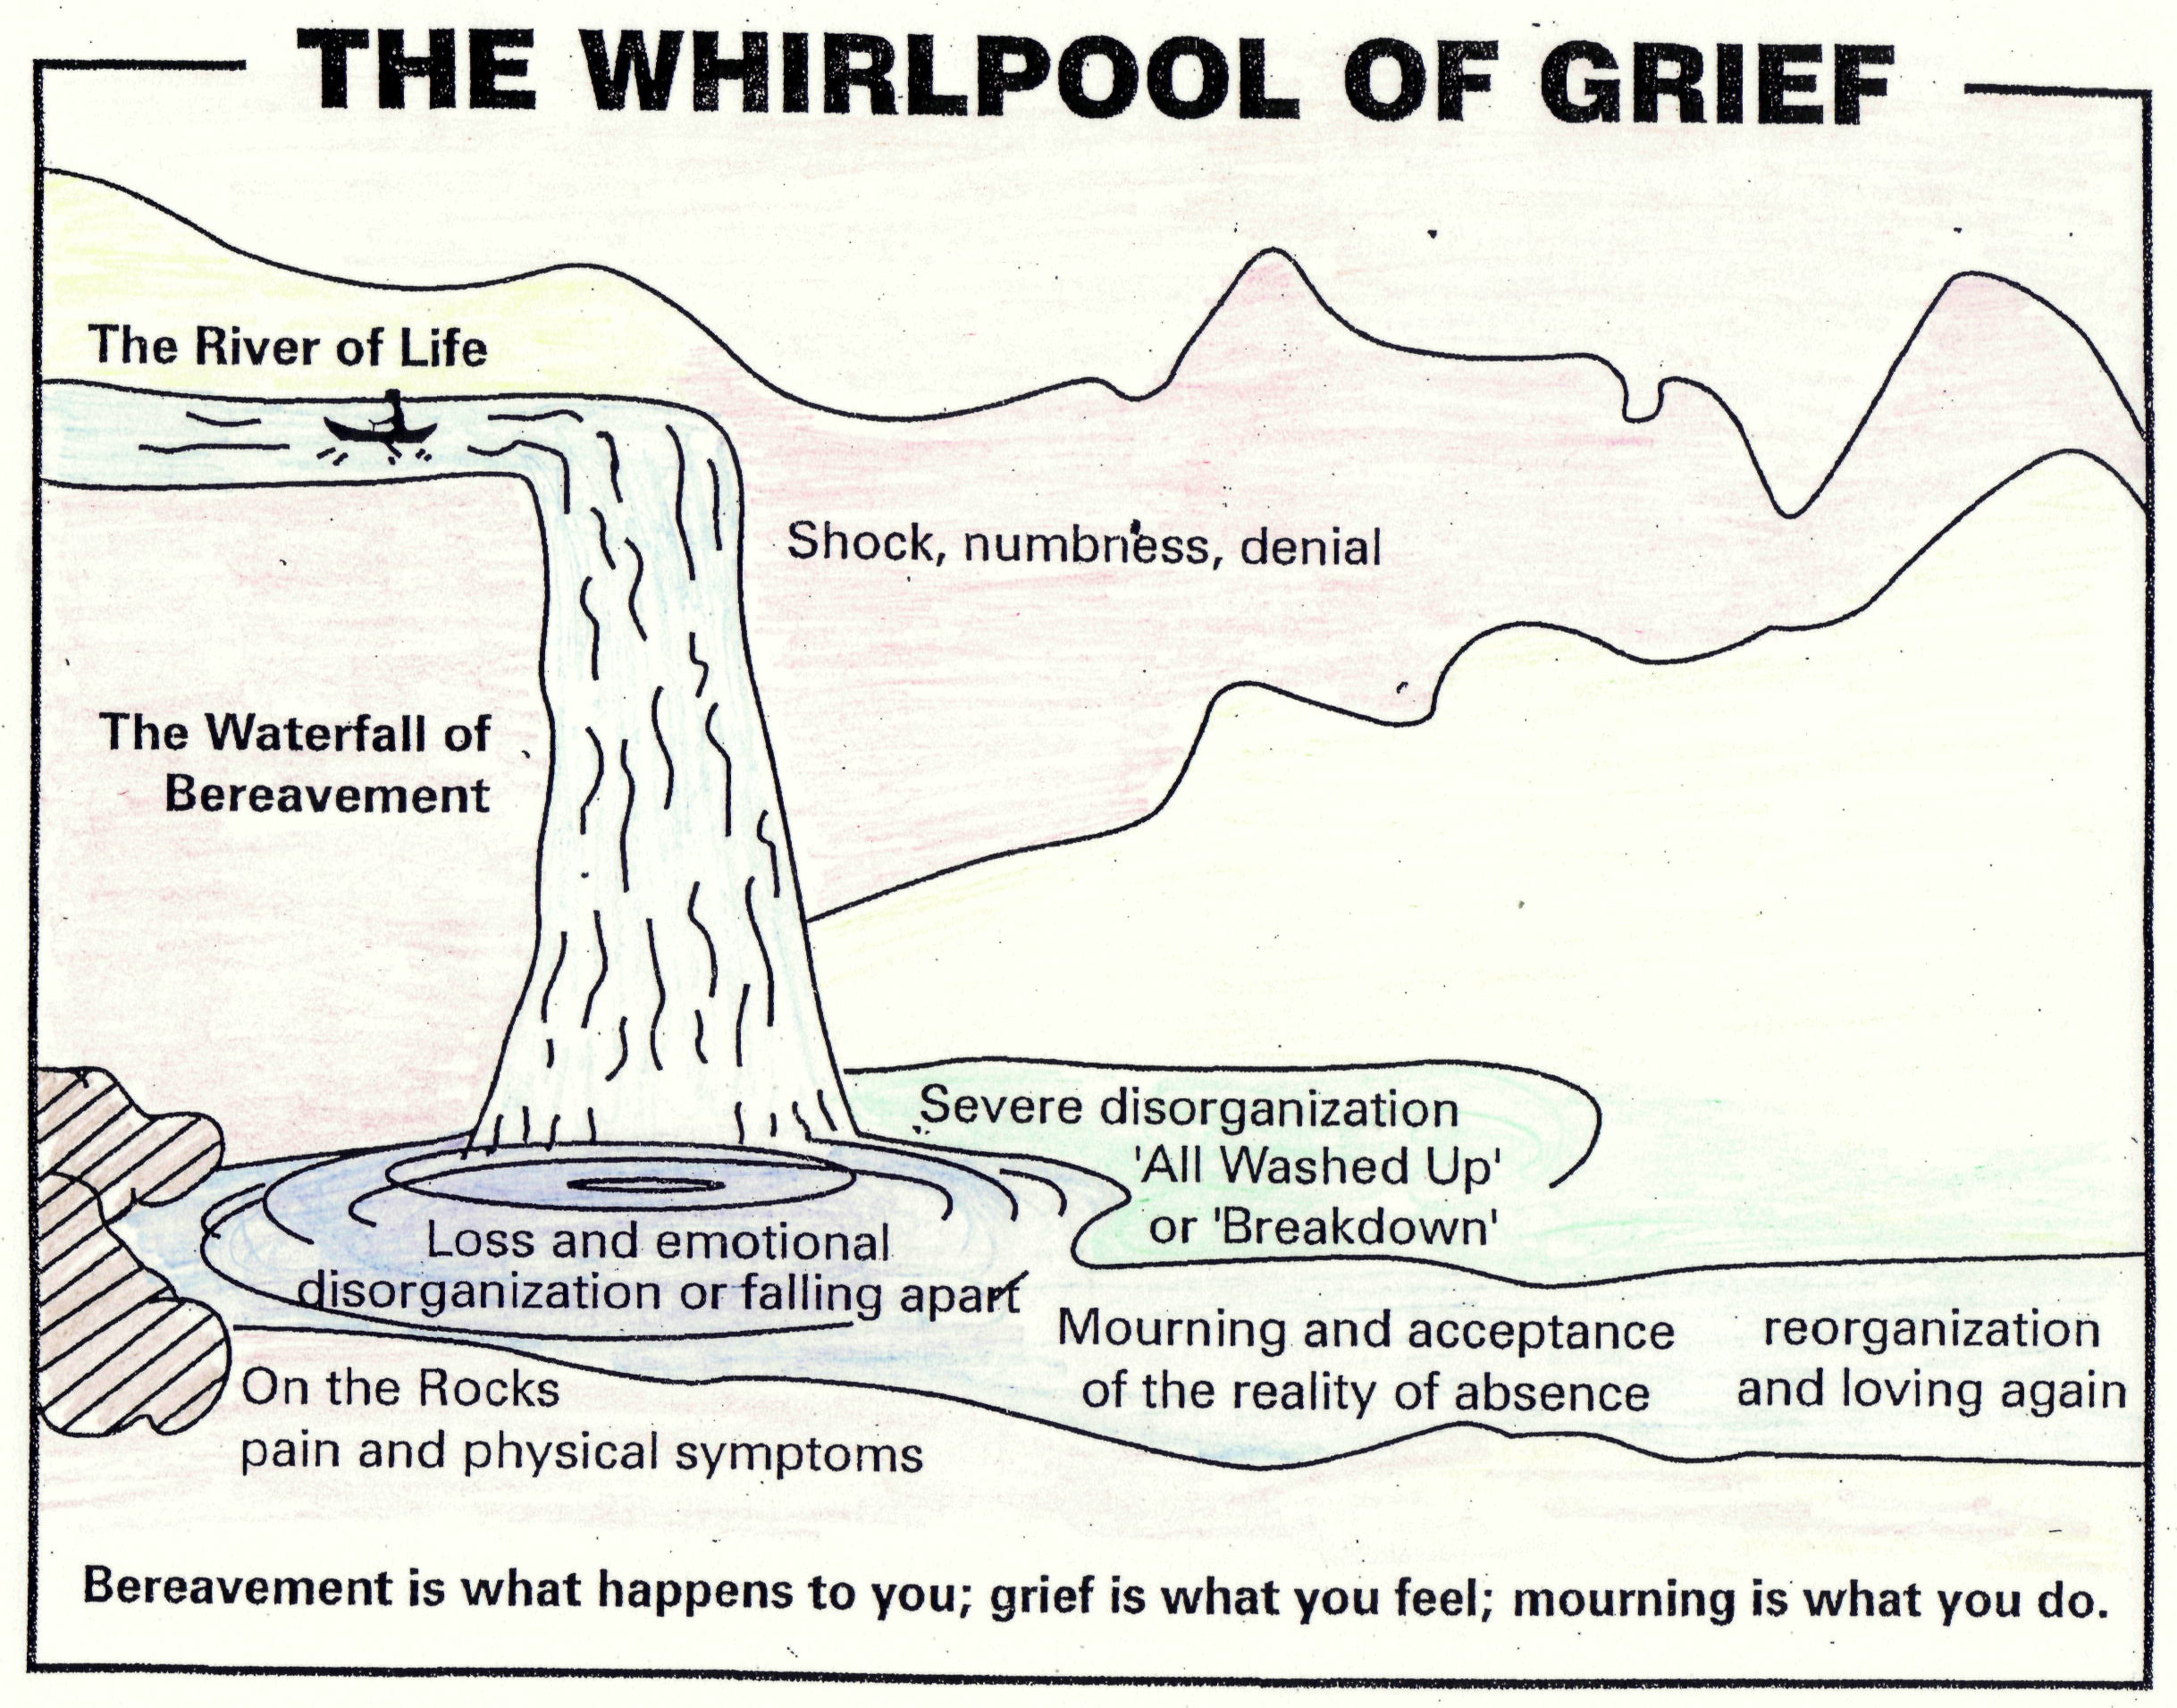 Bereavement Whirlpool Of Grief Bmp